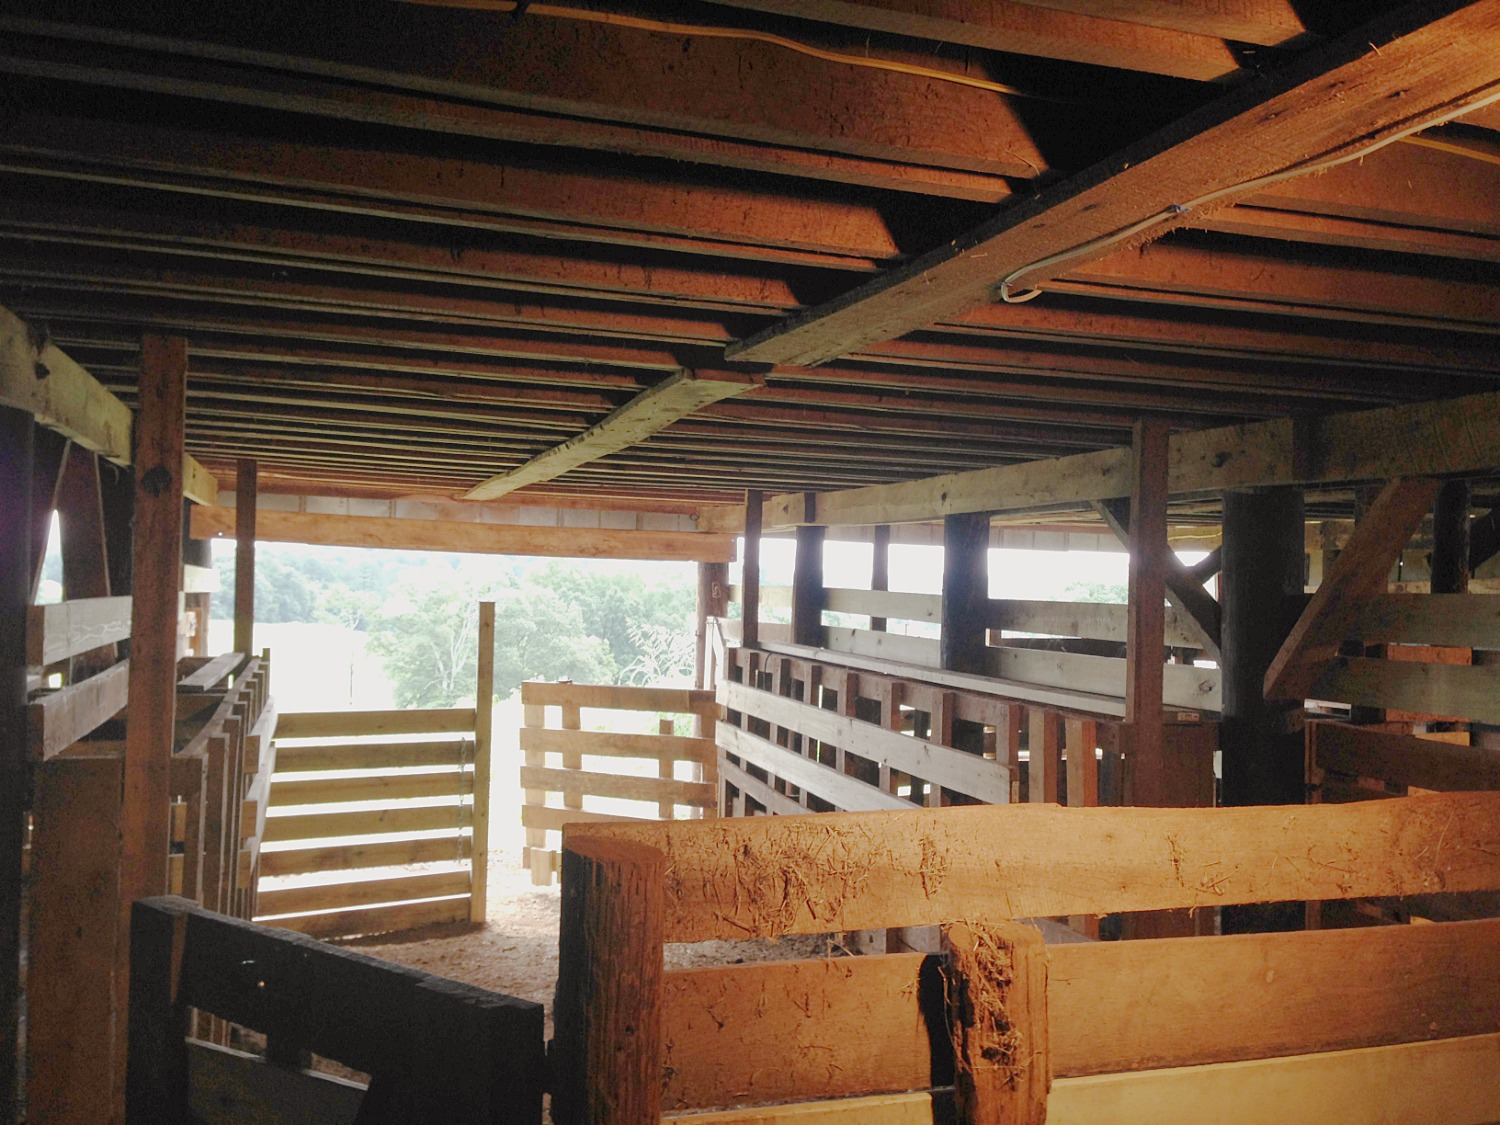 20x10' stalls behind with front gate